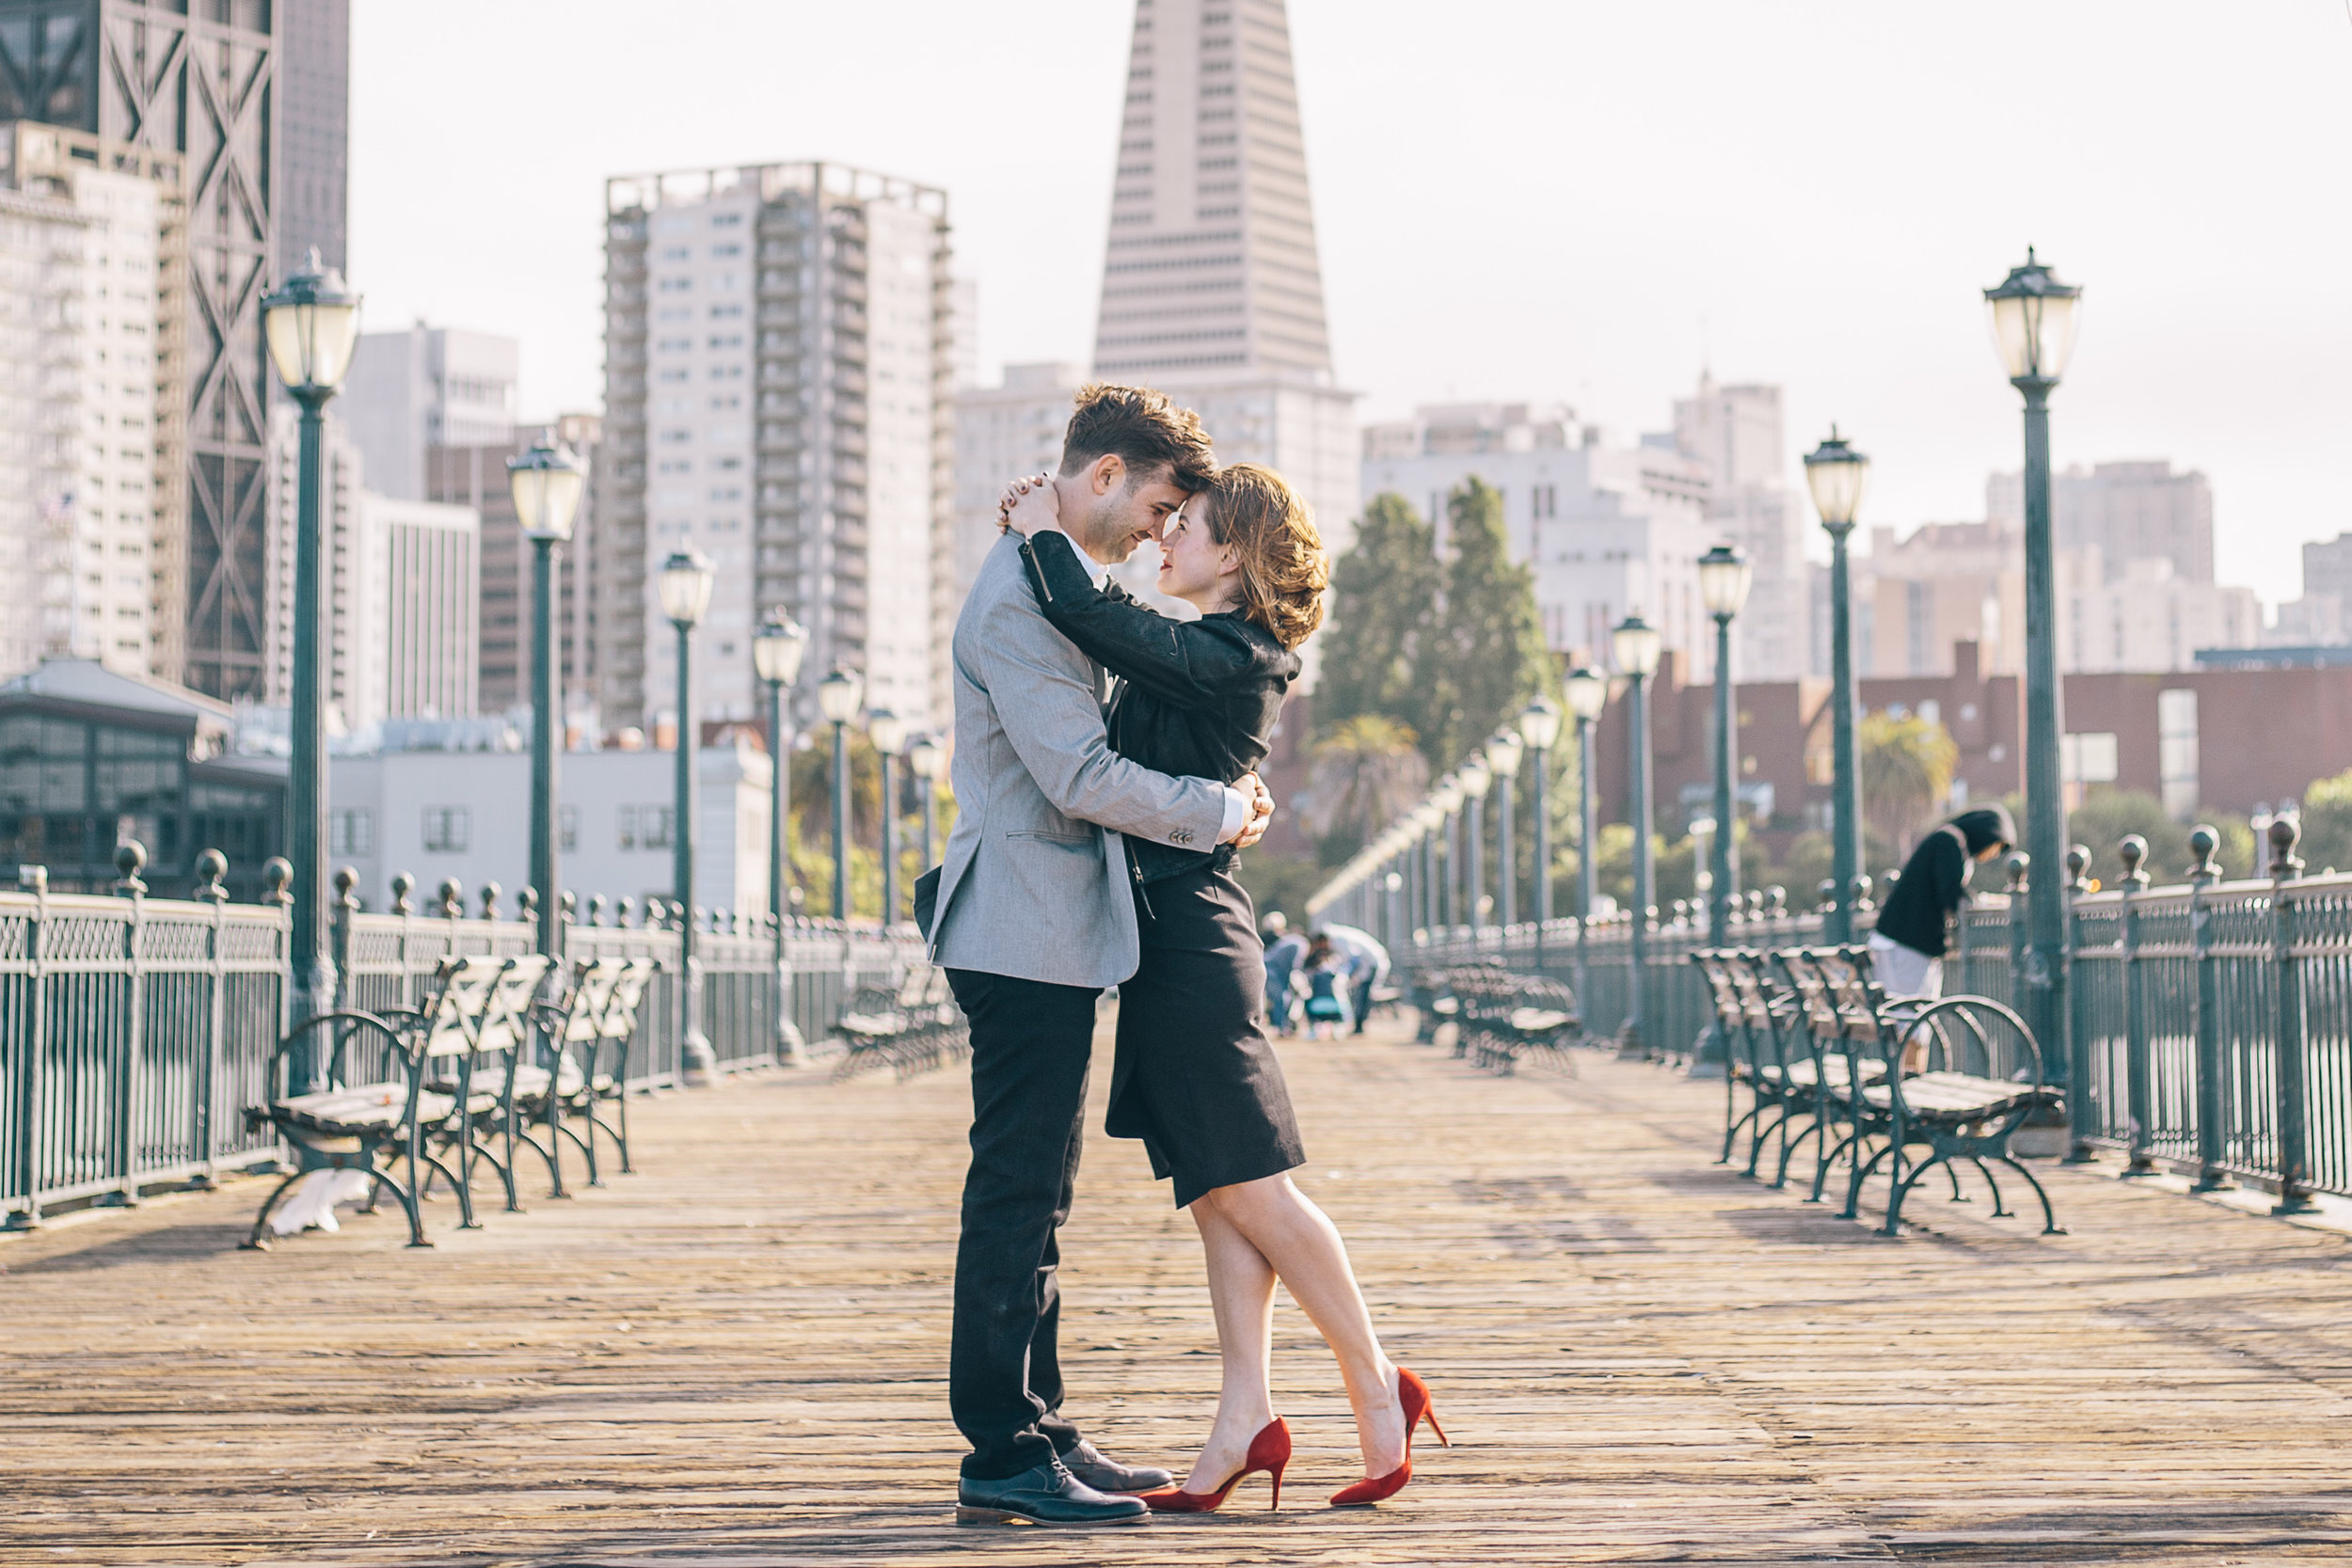 Pier 7 Engagement Photos by JBJ Pictures - Pre-wedding Photo Session in San Francisco (6).jpg